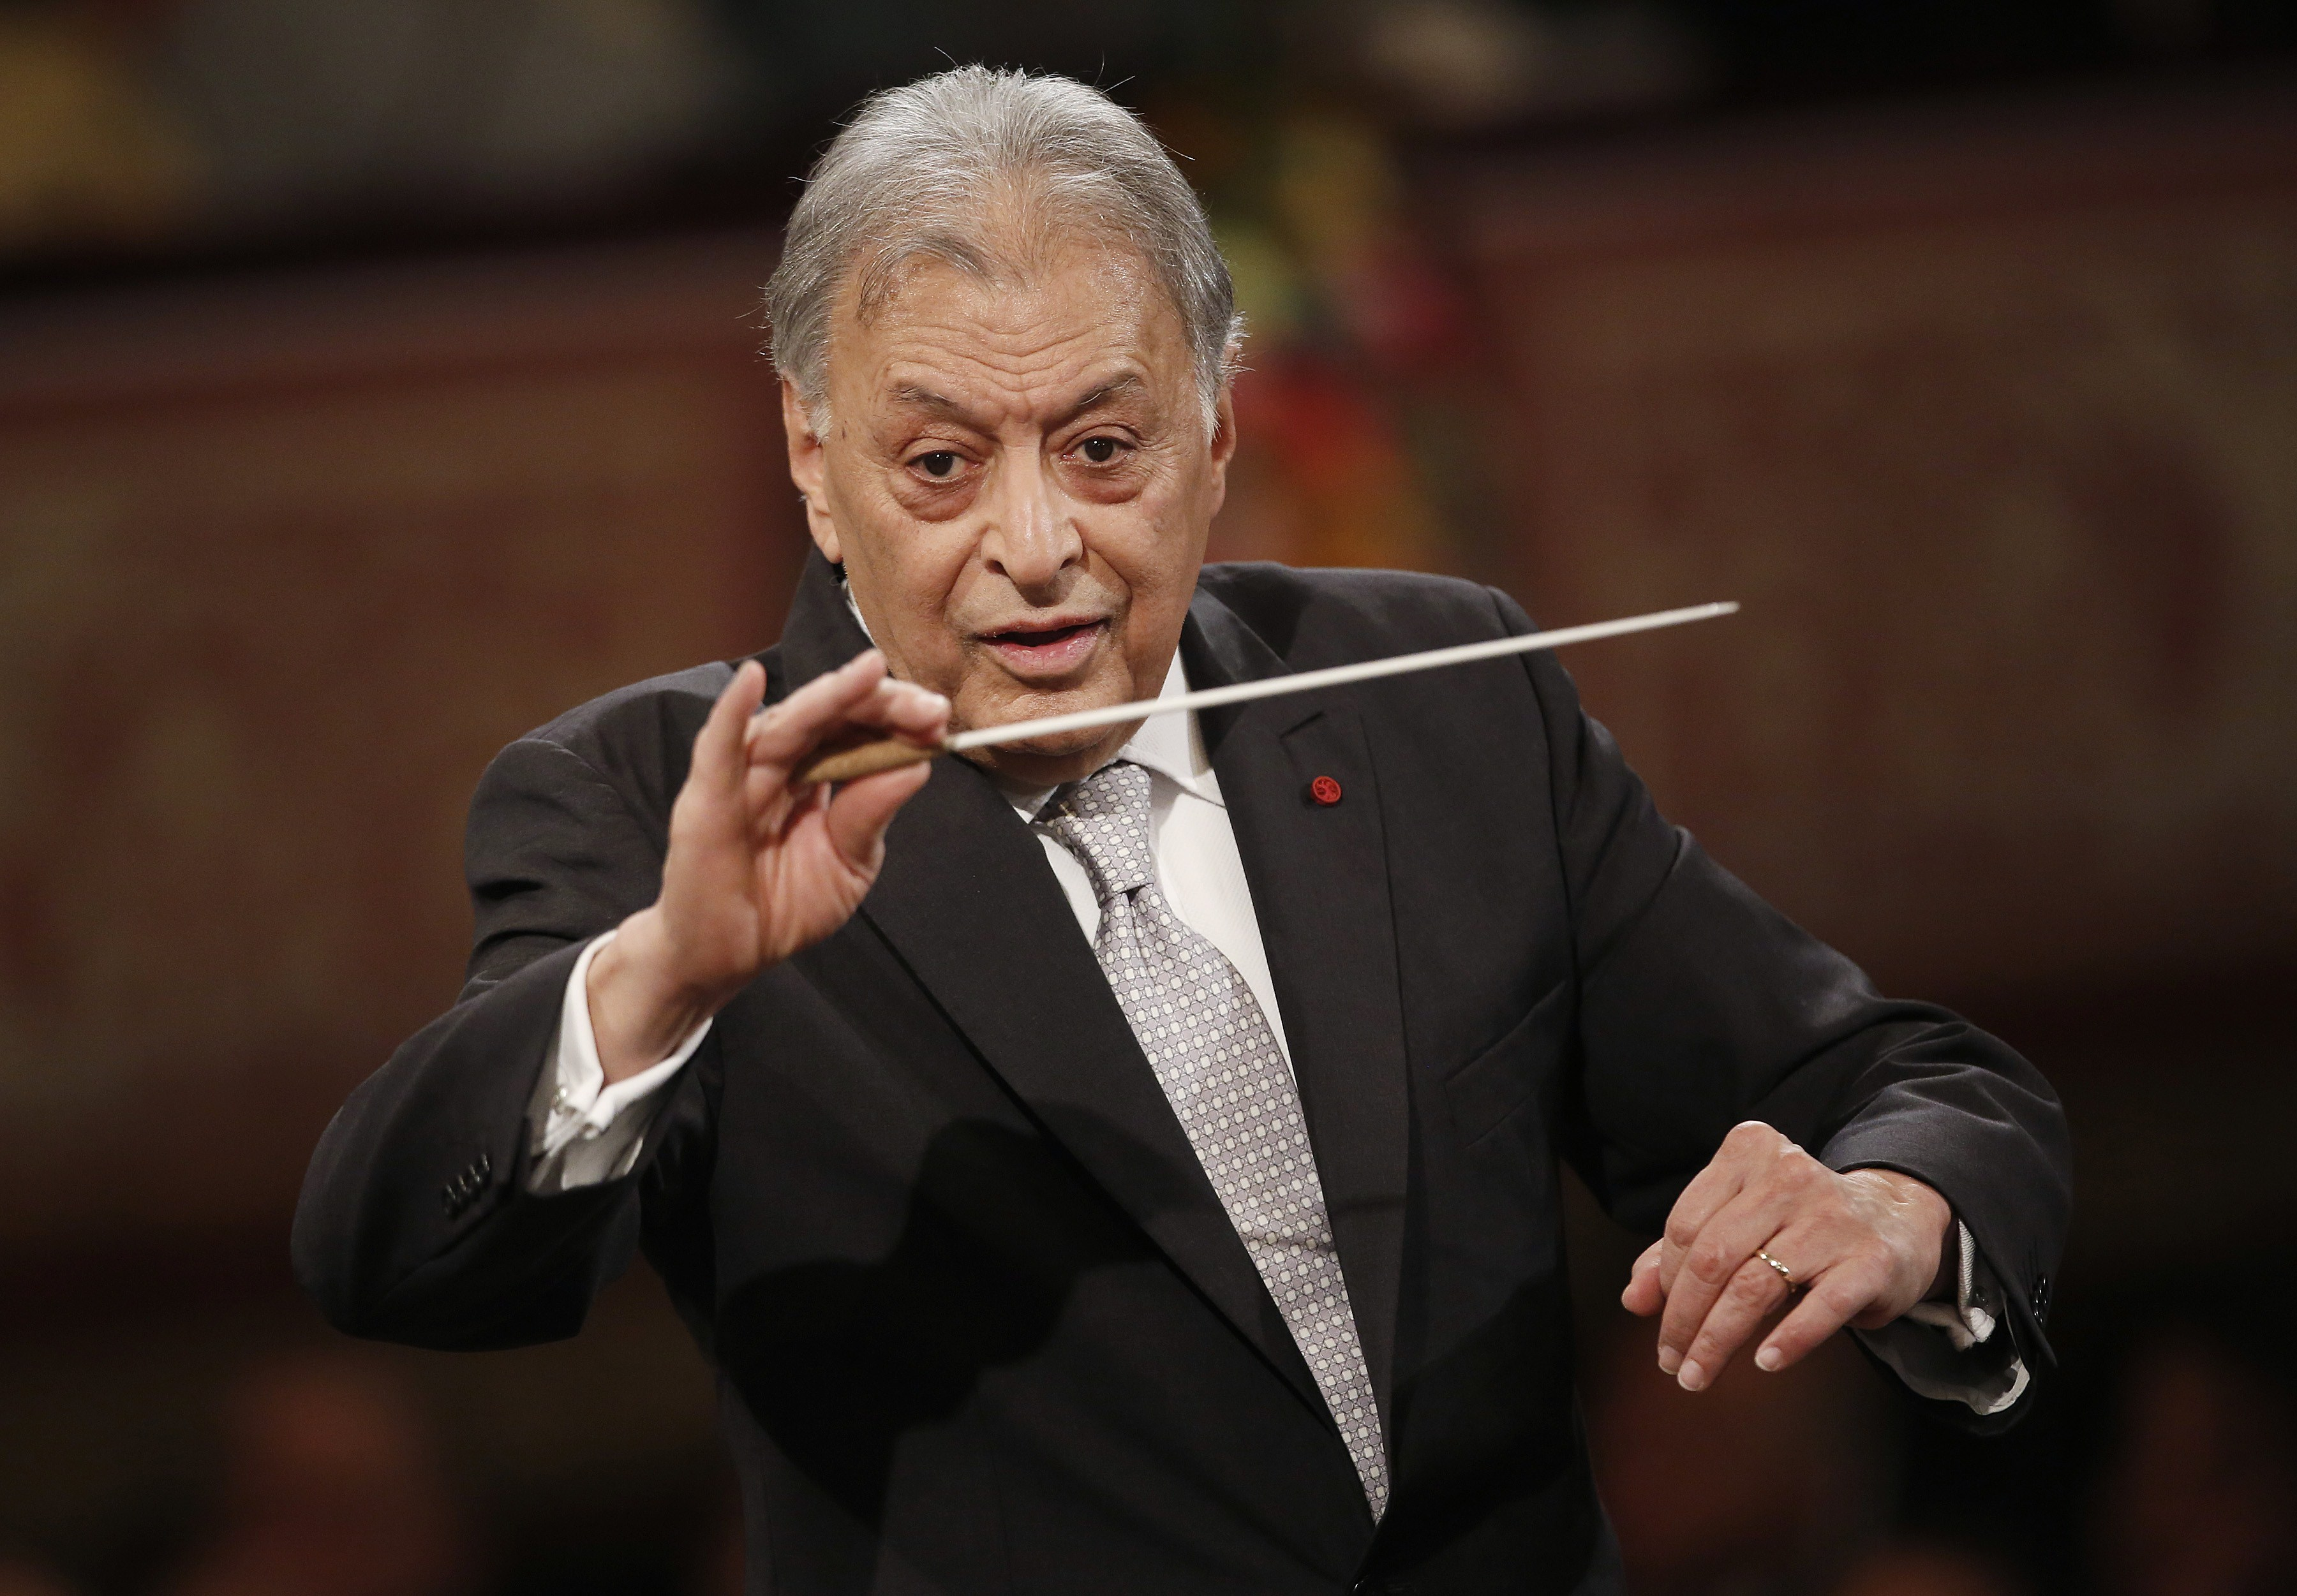 Indian conducter Zubin Mehta performs with the Vienna Philharmonic Orchestra during the New Year's Concert at the Golden Hall of the Musikverein on January 1, 2015 in Vienna. AFP PHOTO / DIETER NAGL